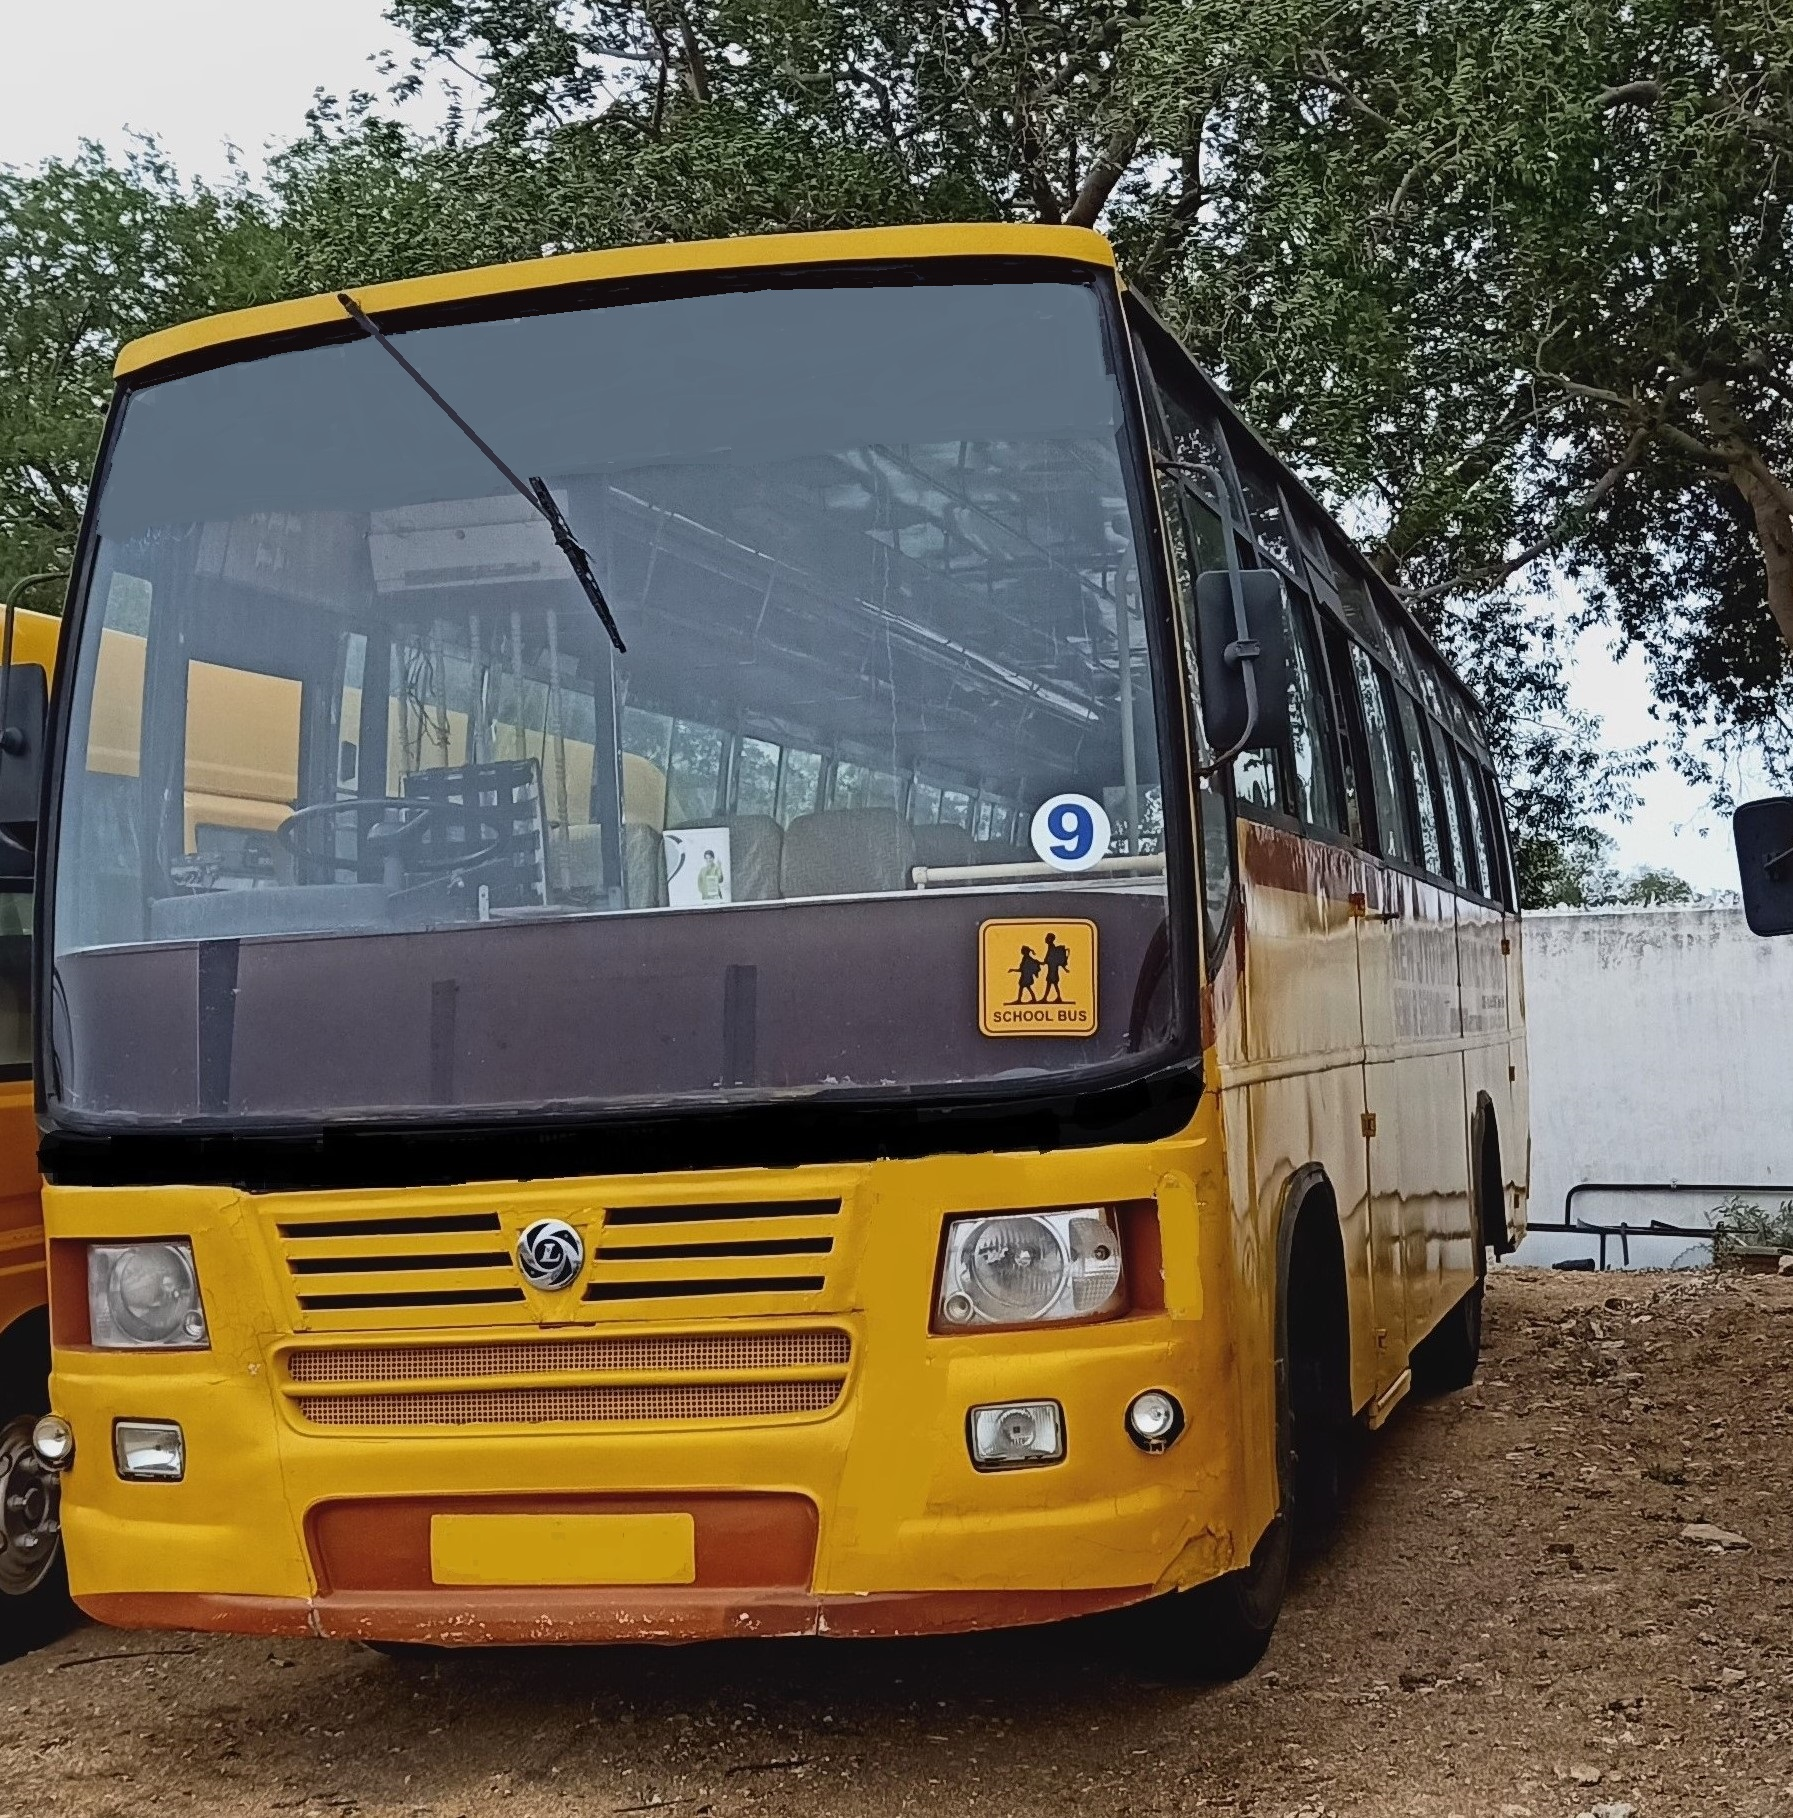 bus for sale available at asmitha bus service in thoothukudi